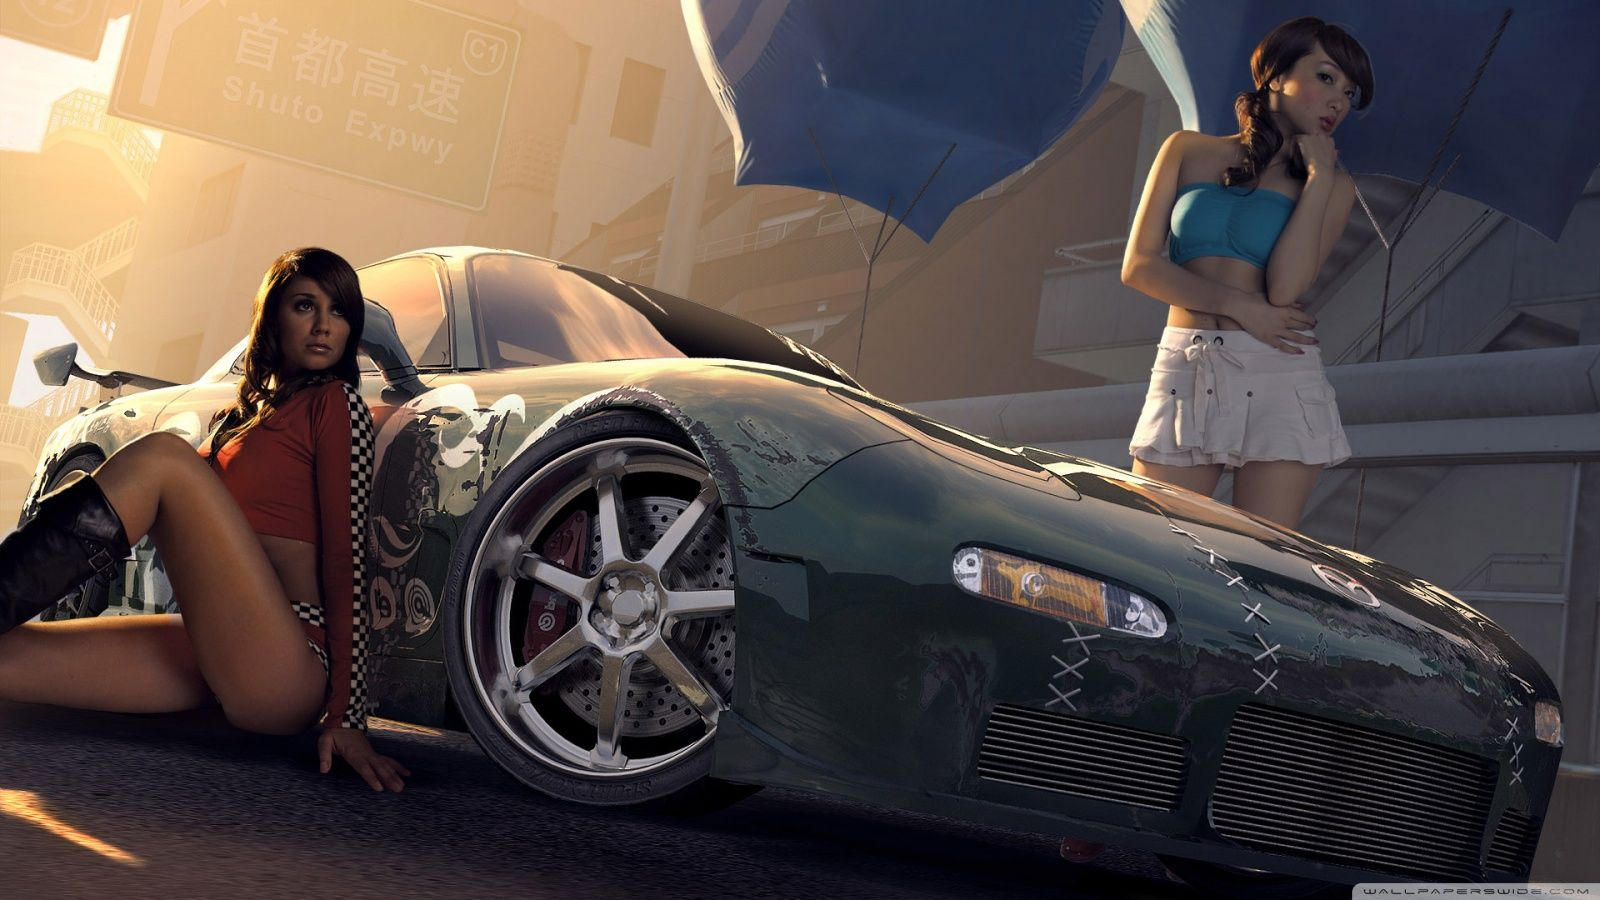 Need For Speed The Run HD Desktop Wallpaper Widescreen High